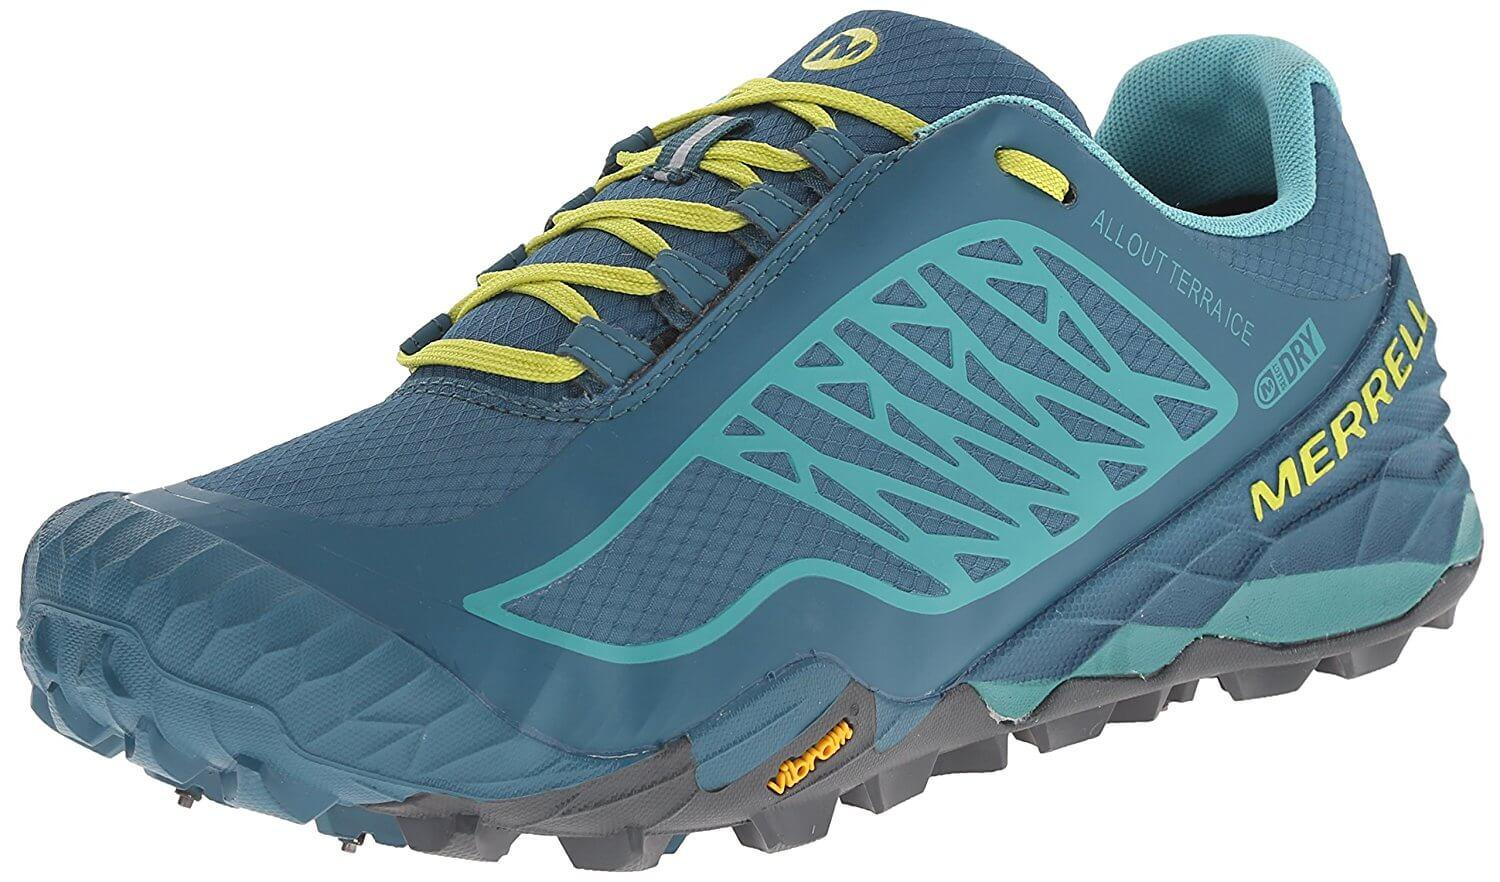 Merrell All Out Terra Ice 1